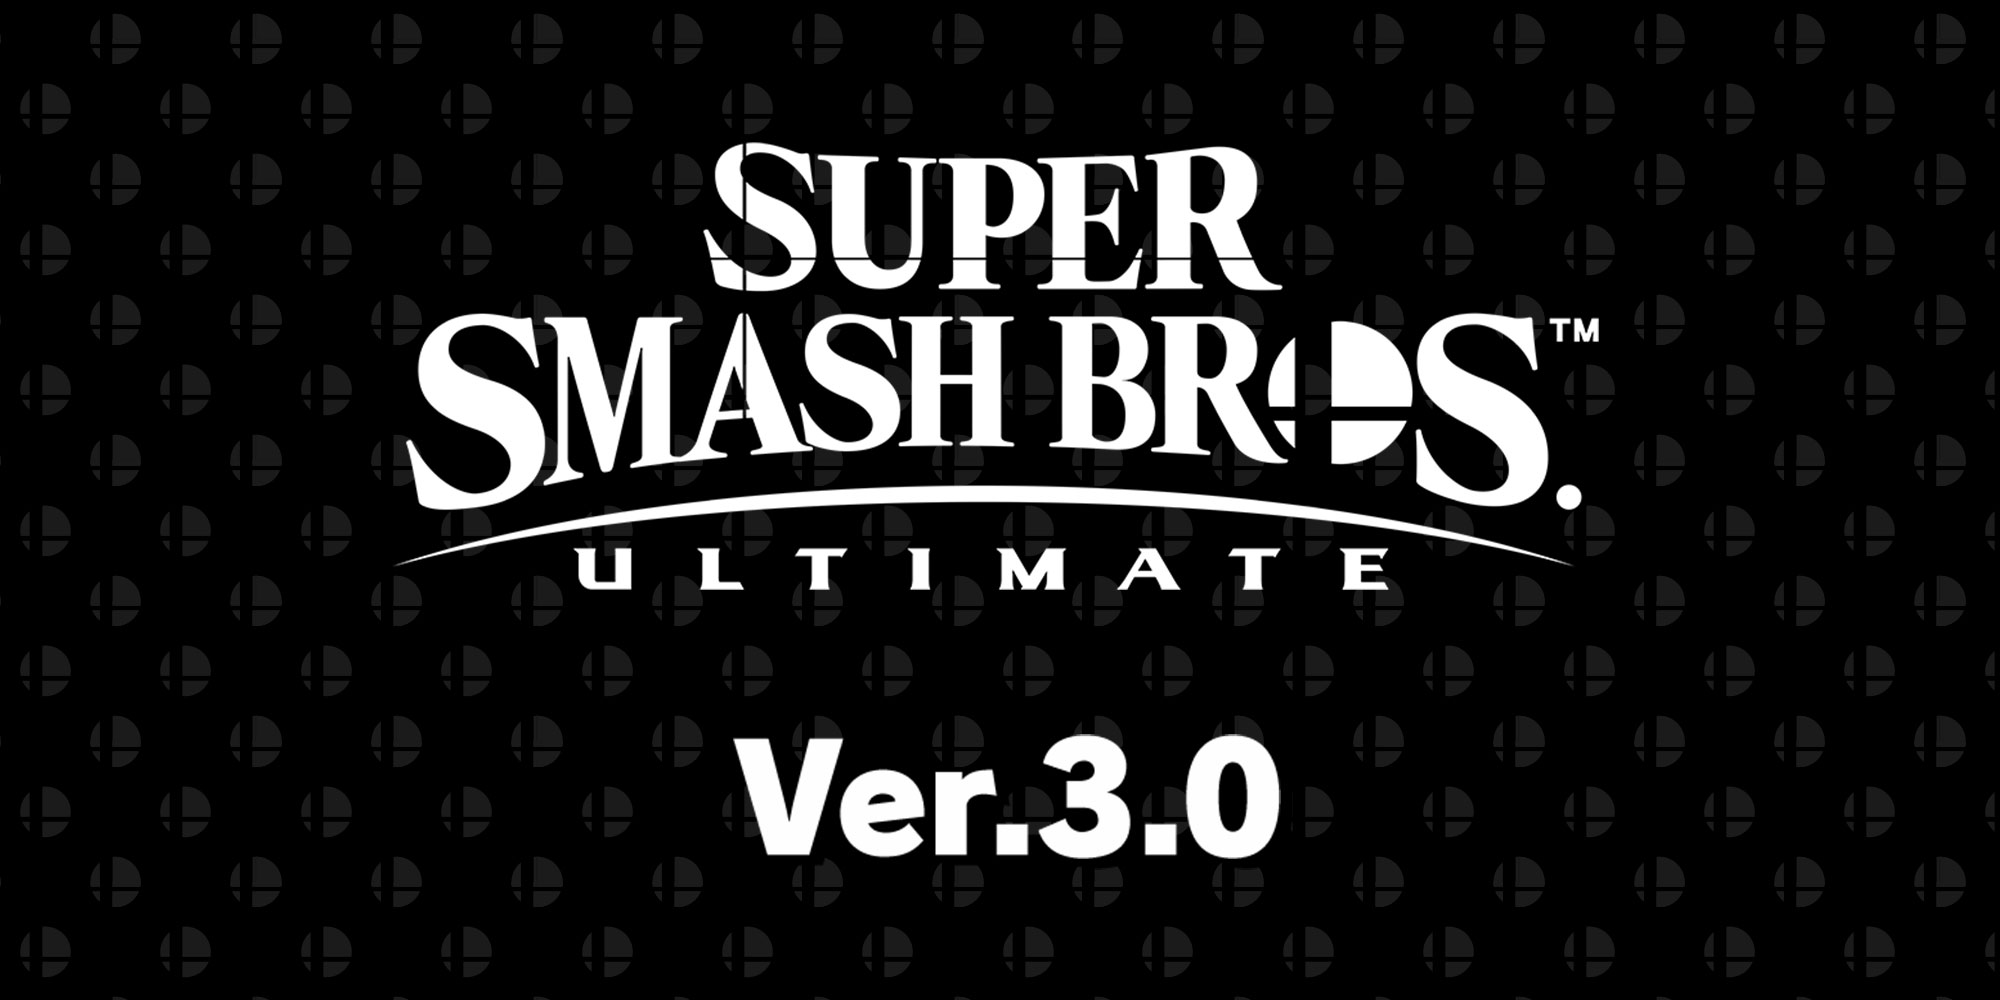 ¡Joker, de Persona 5, se une al plantel de Super Smash Bros. Ultimate el 18 de abril!